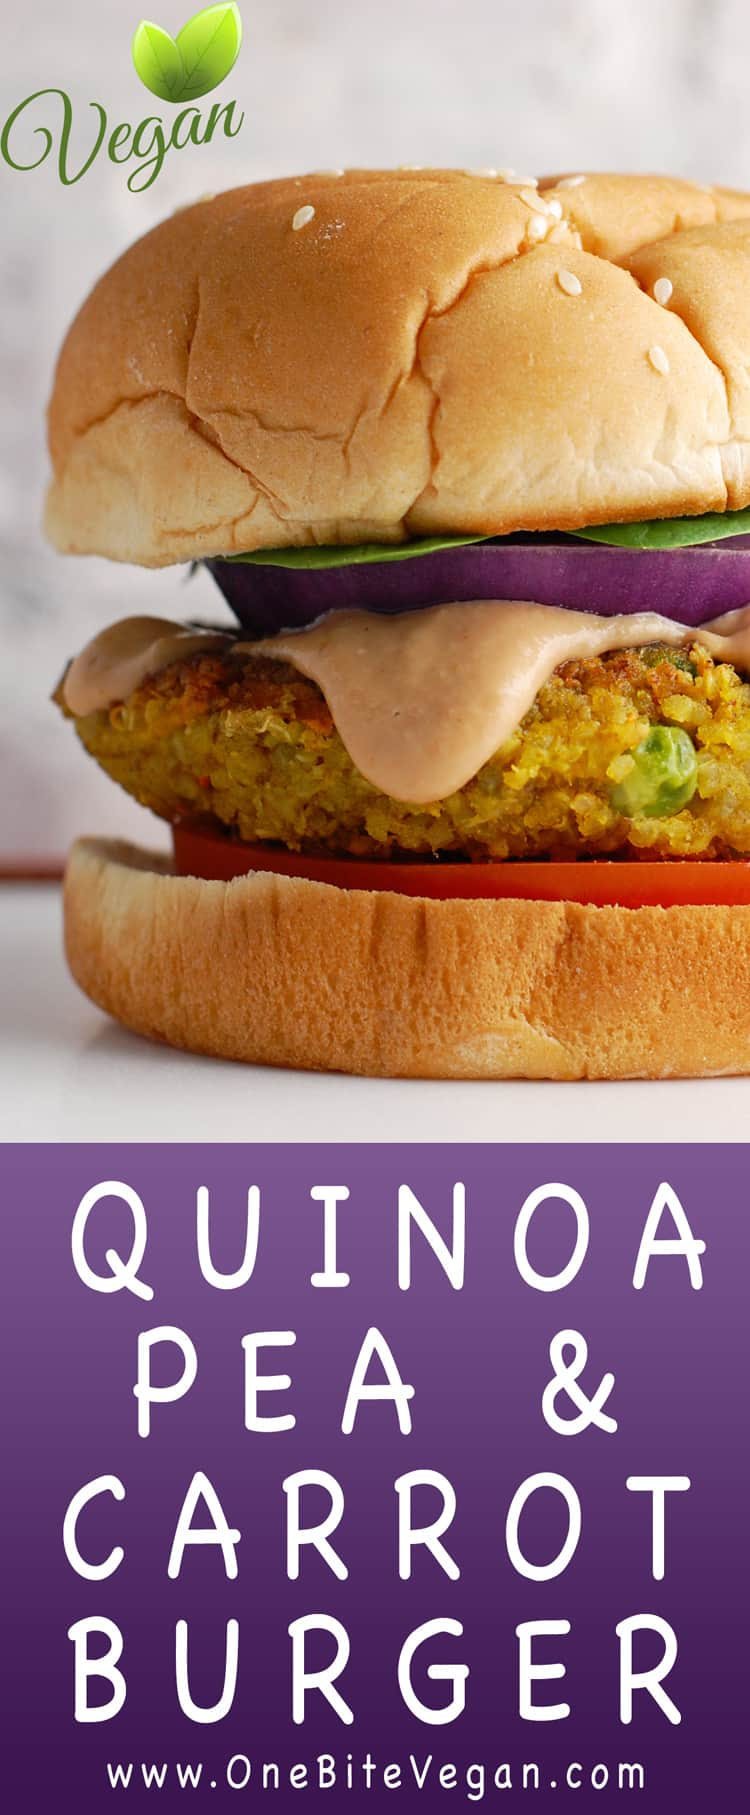 Quinoa burger with peas and carrots. These bean-free, nut-free vegan quinoa burgers are packed with protein and veggies. They can be made ahead of time and even frozen for use another day.